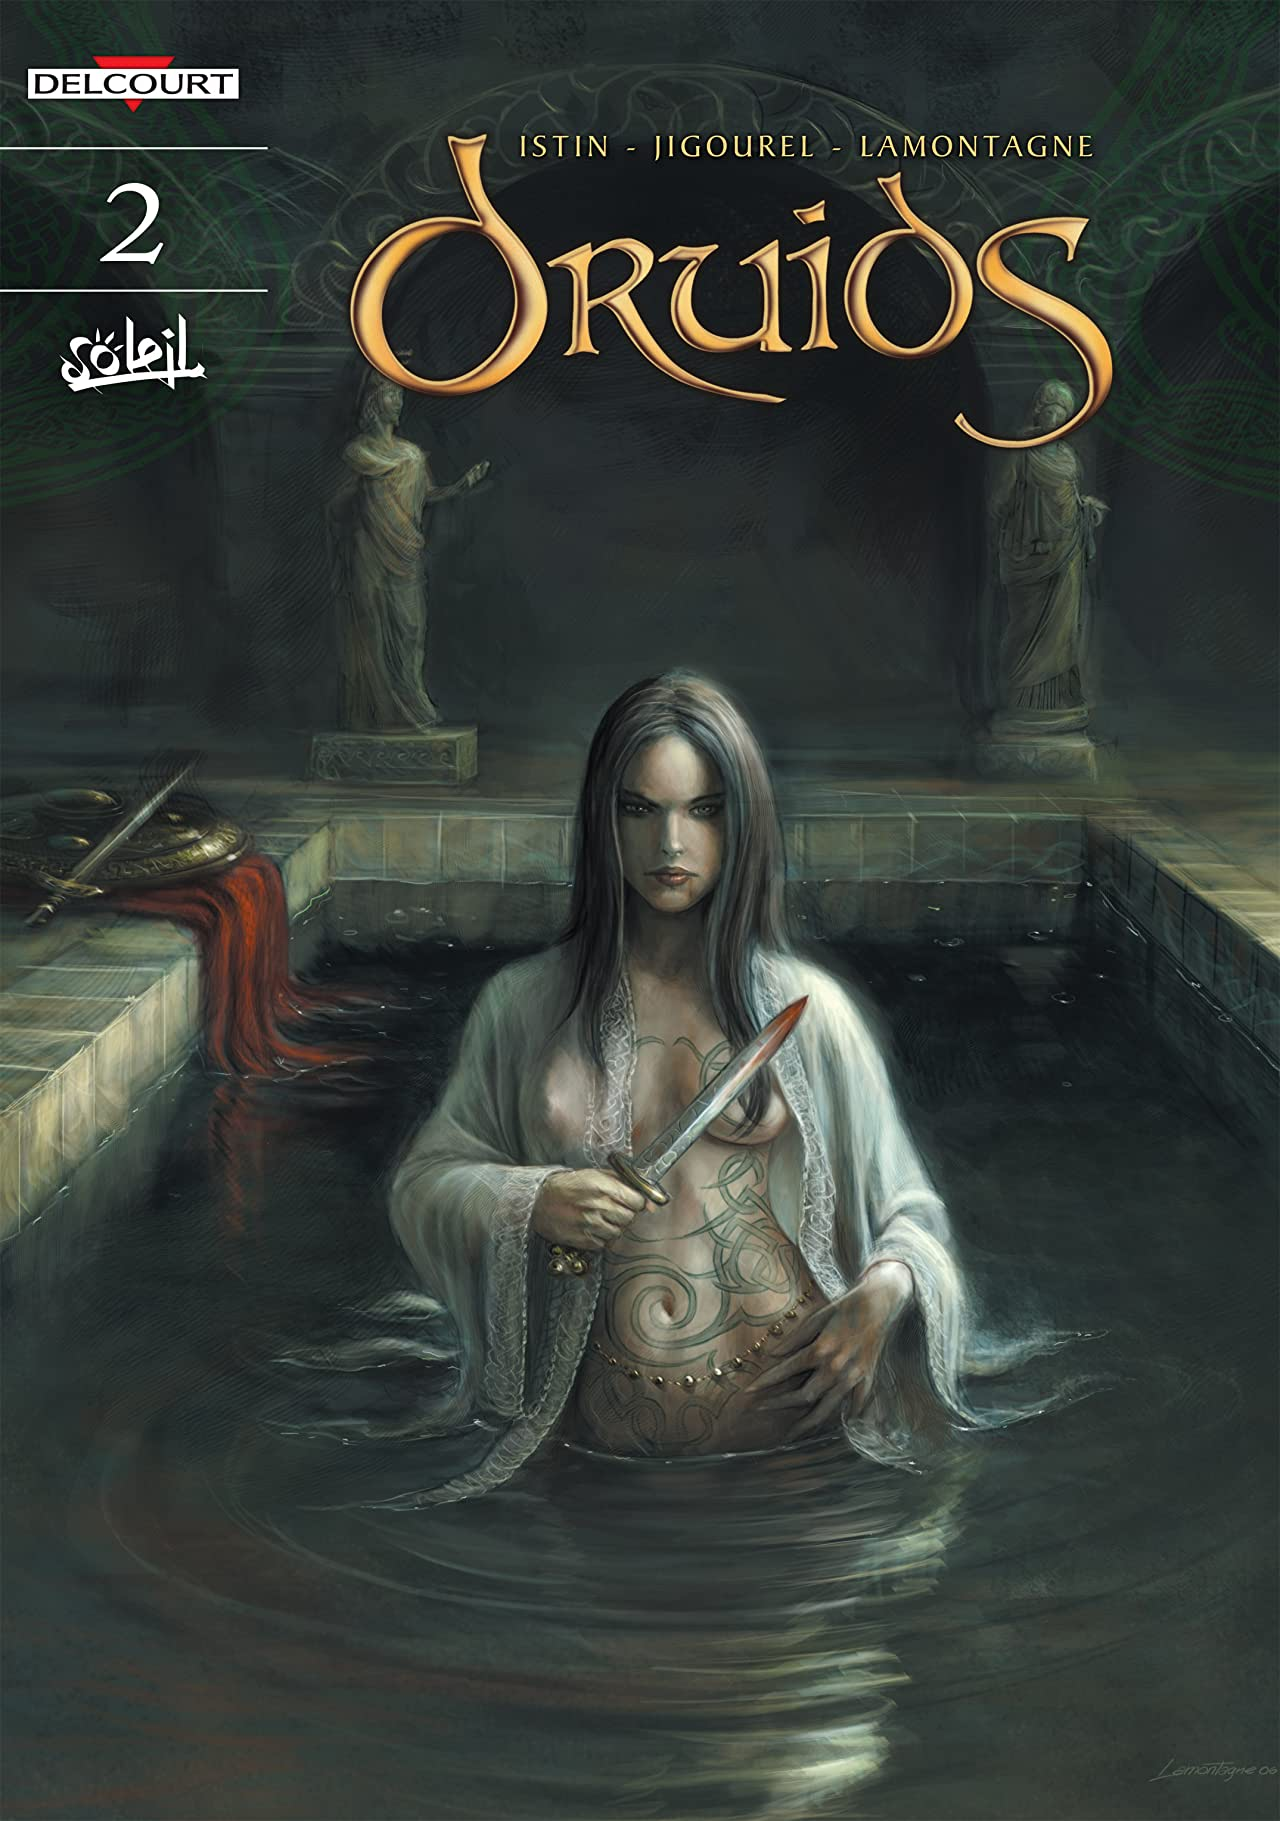 Druids Vol. 2: City of Seduction